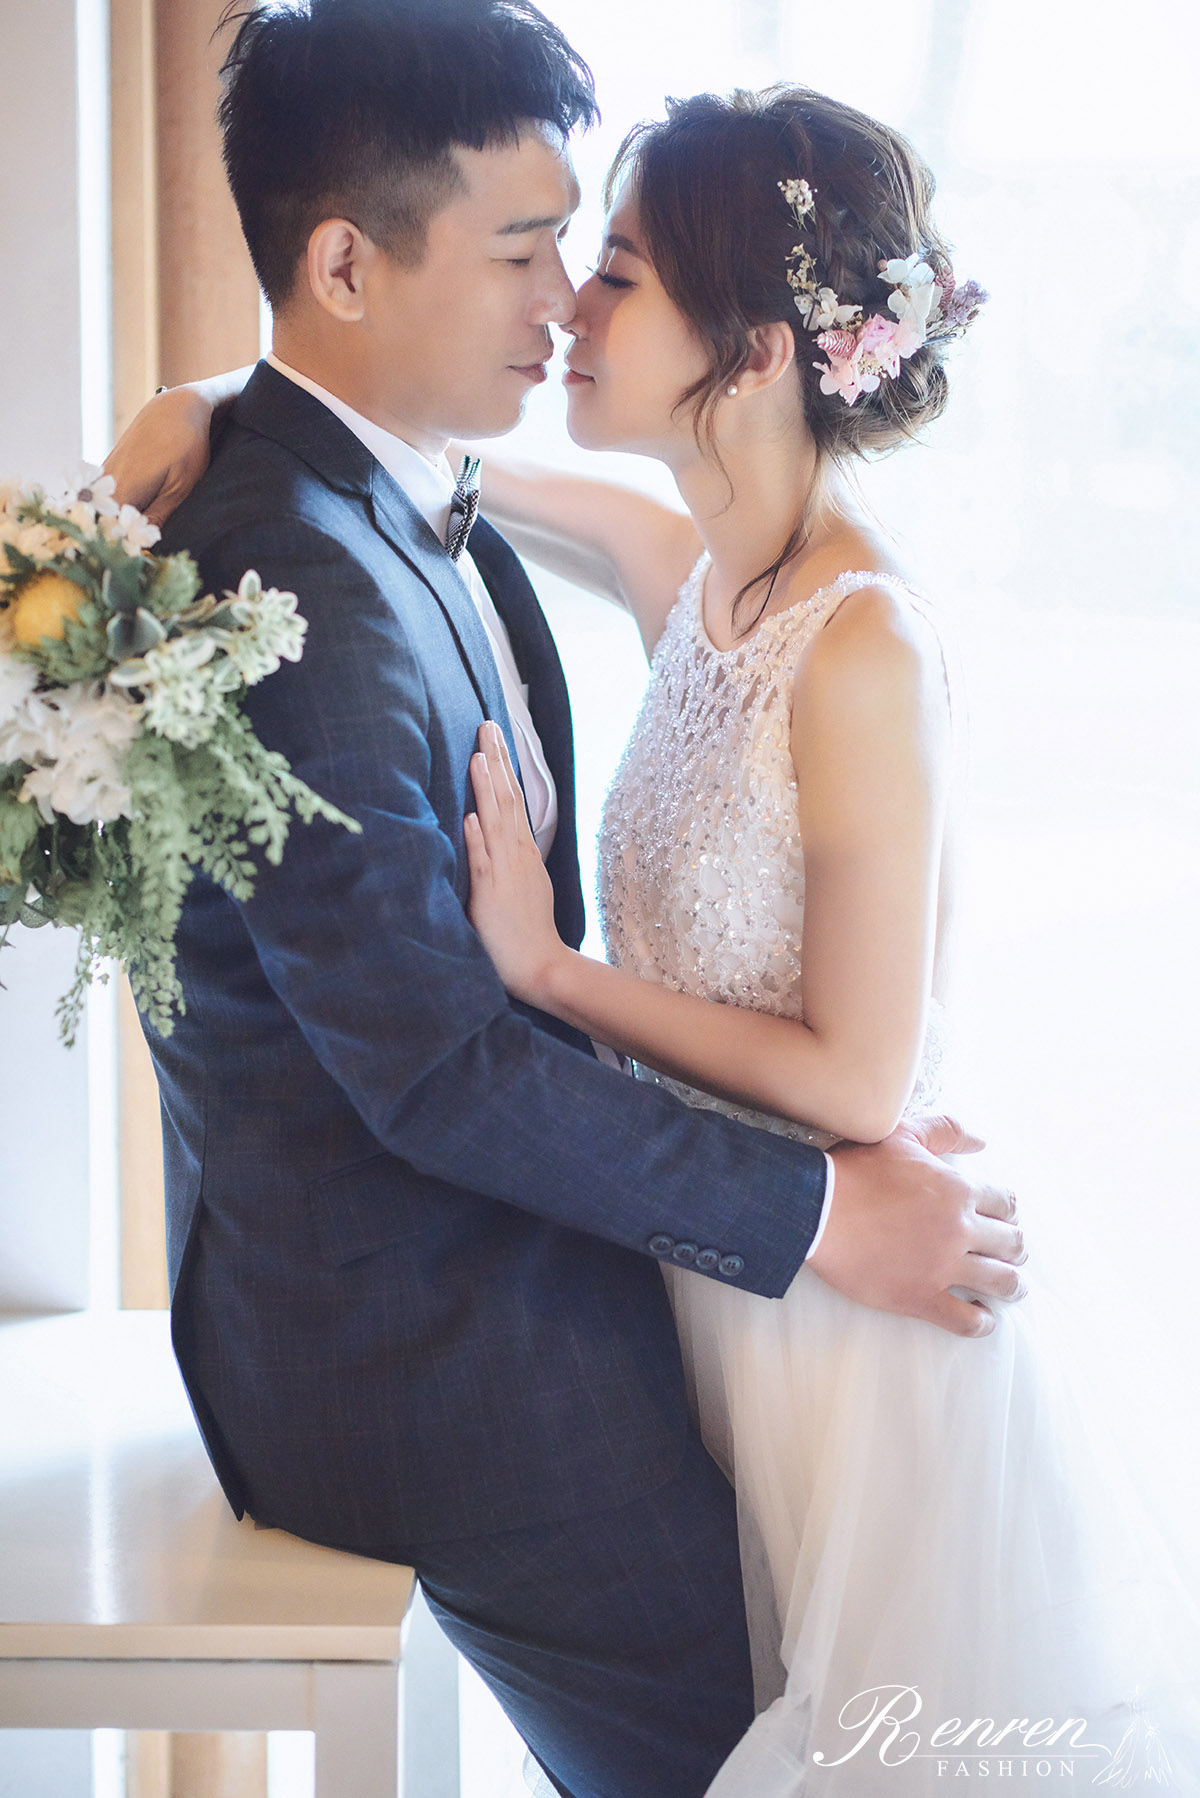 RenRen-Mundo-StylistMei-Wedding-顏氏牧場-婚紗-05